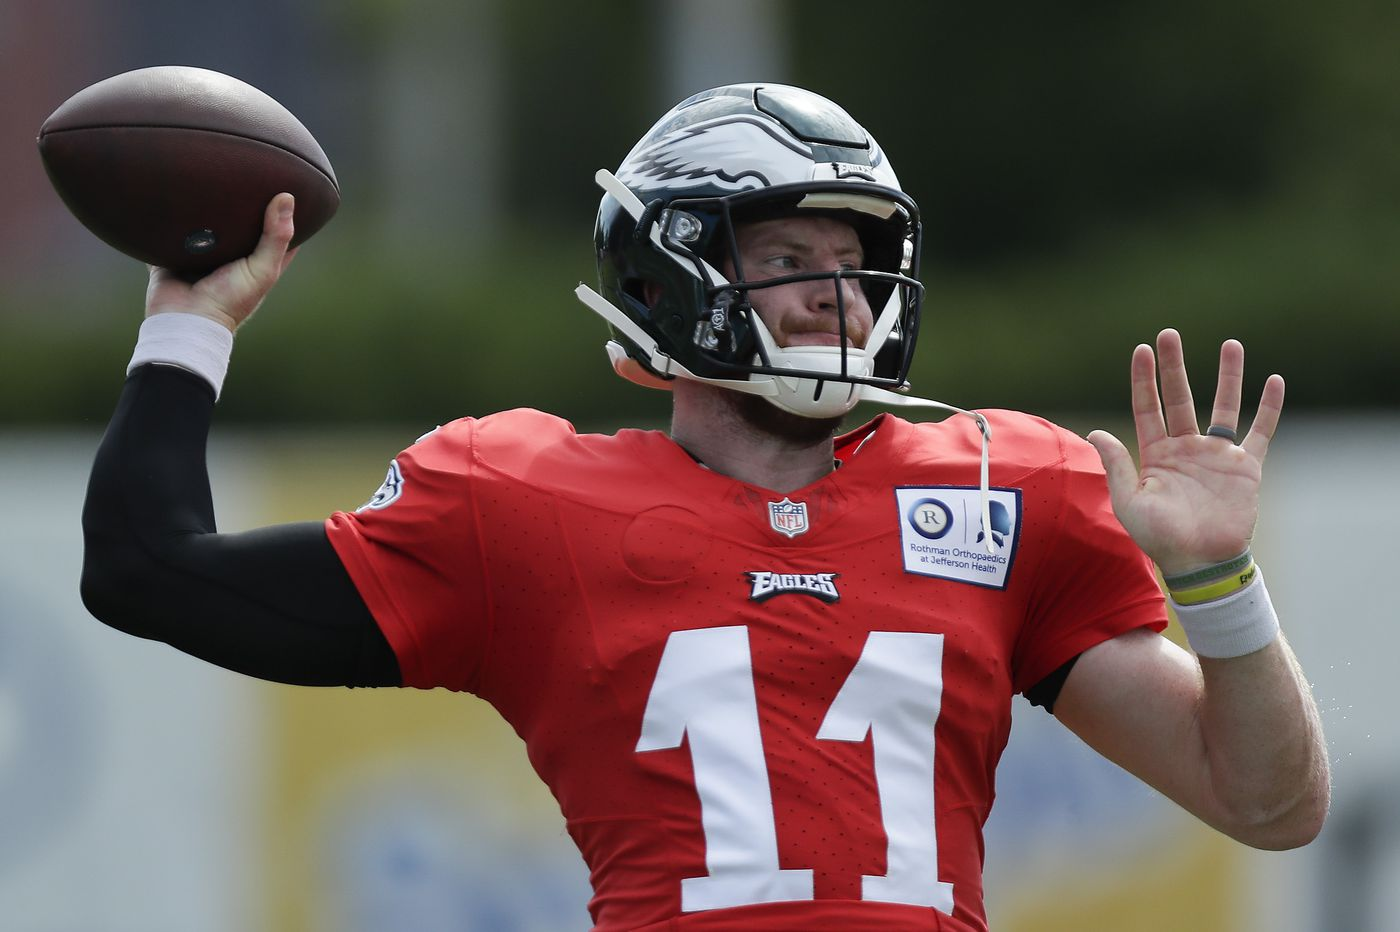 The Eagles' Nickell Robey-Coleman compares Carson Wentz to ex-teammate Jared Goff